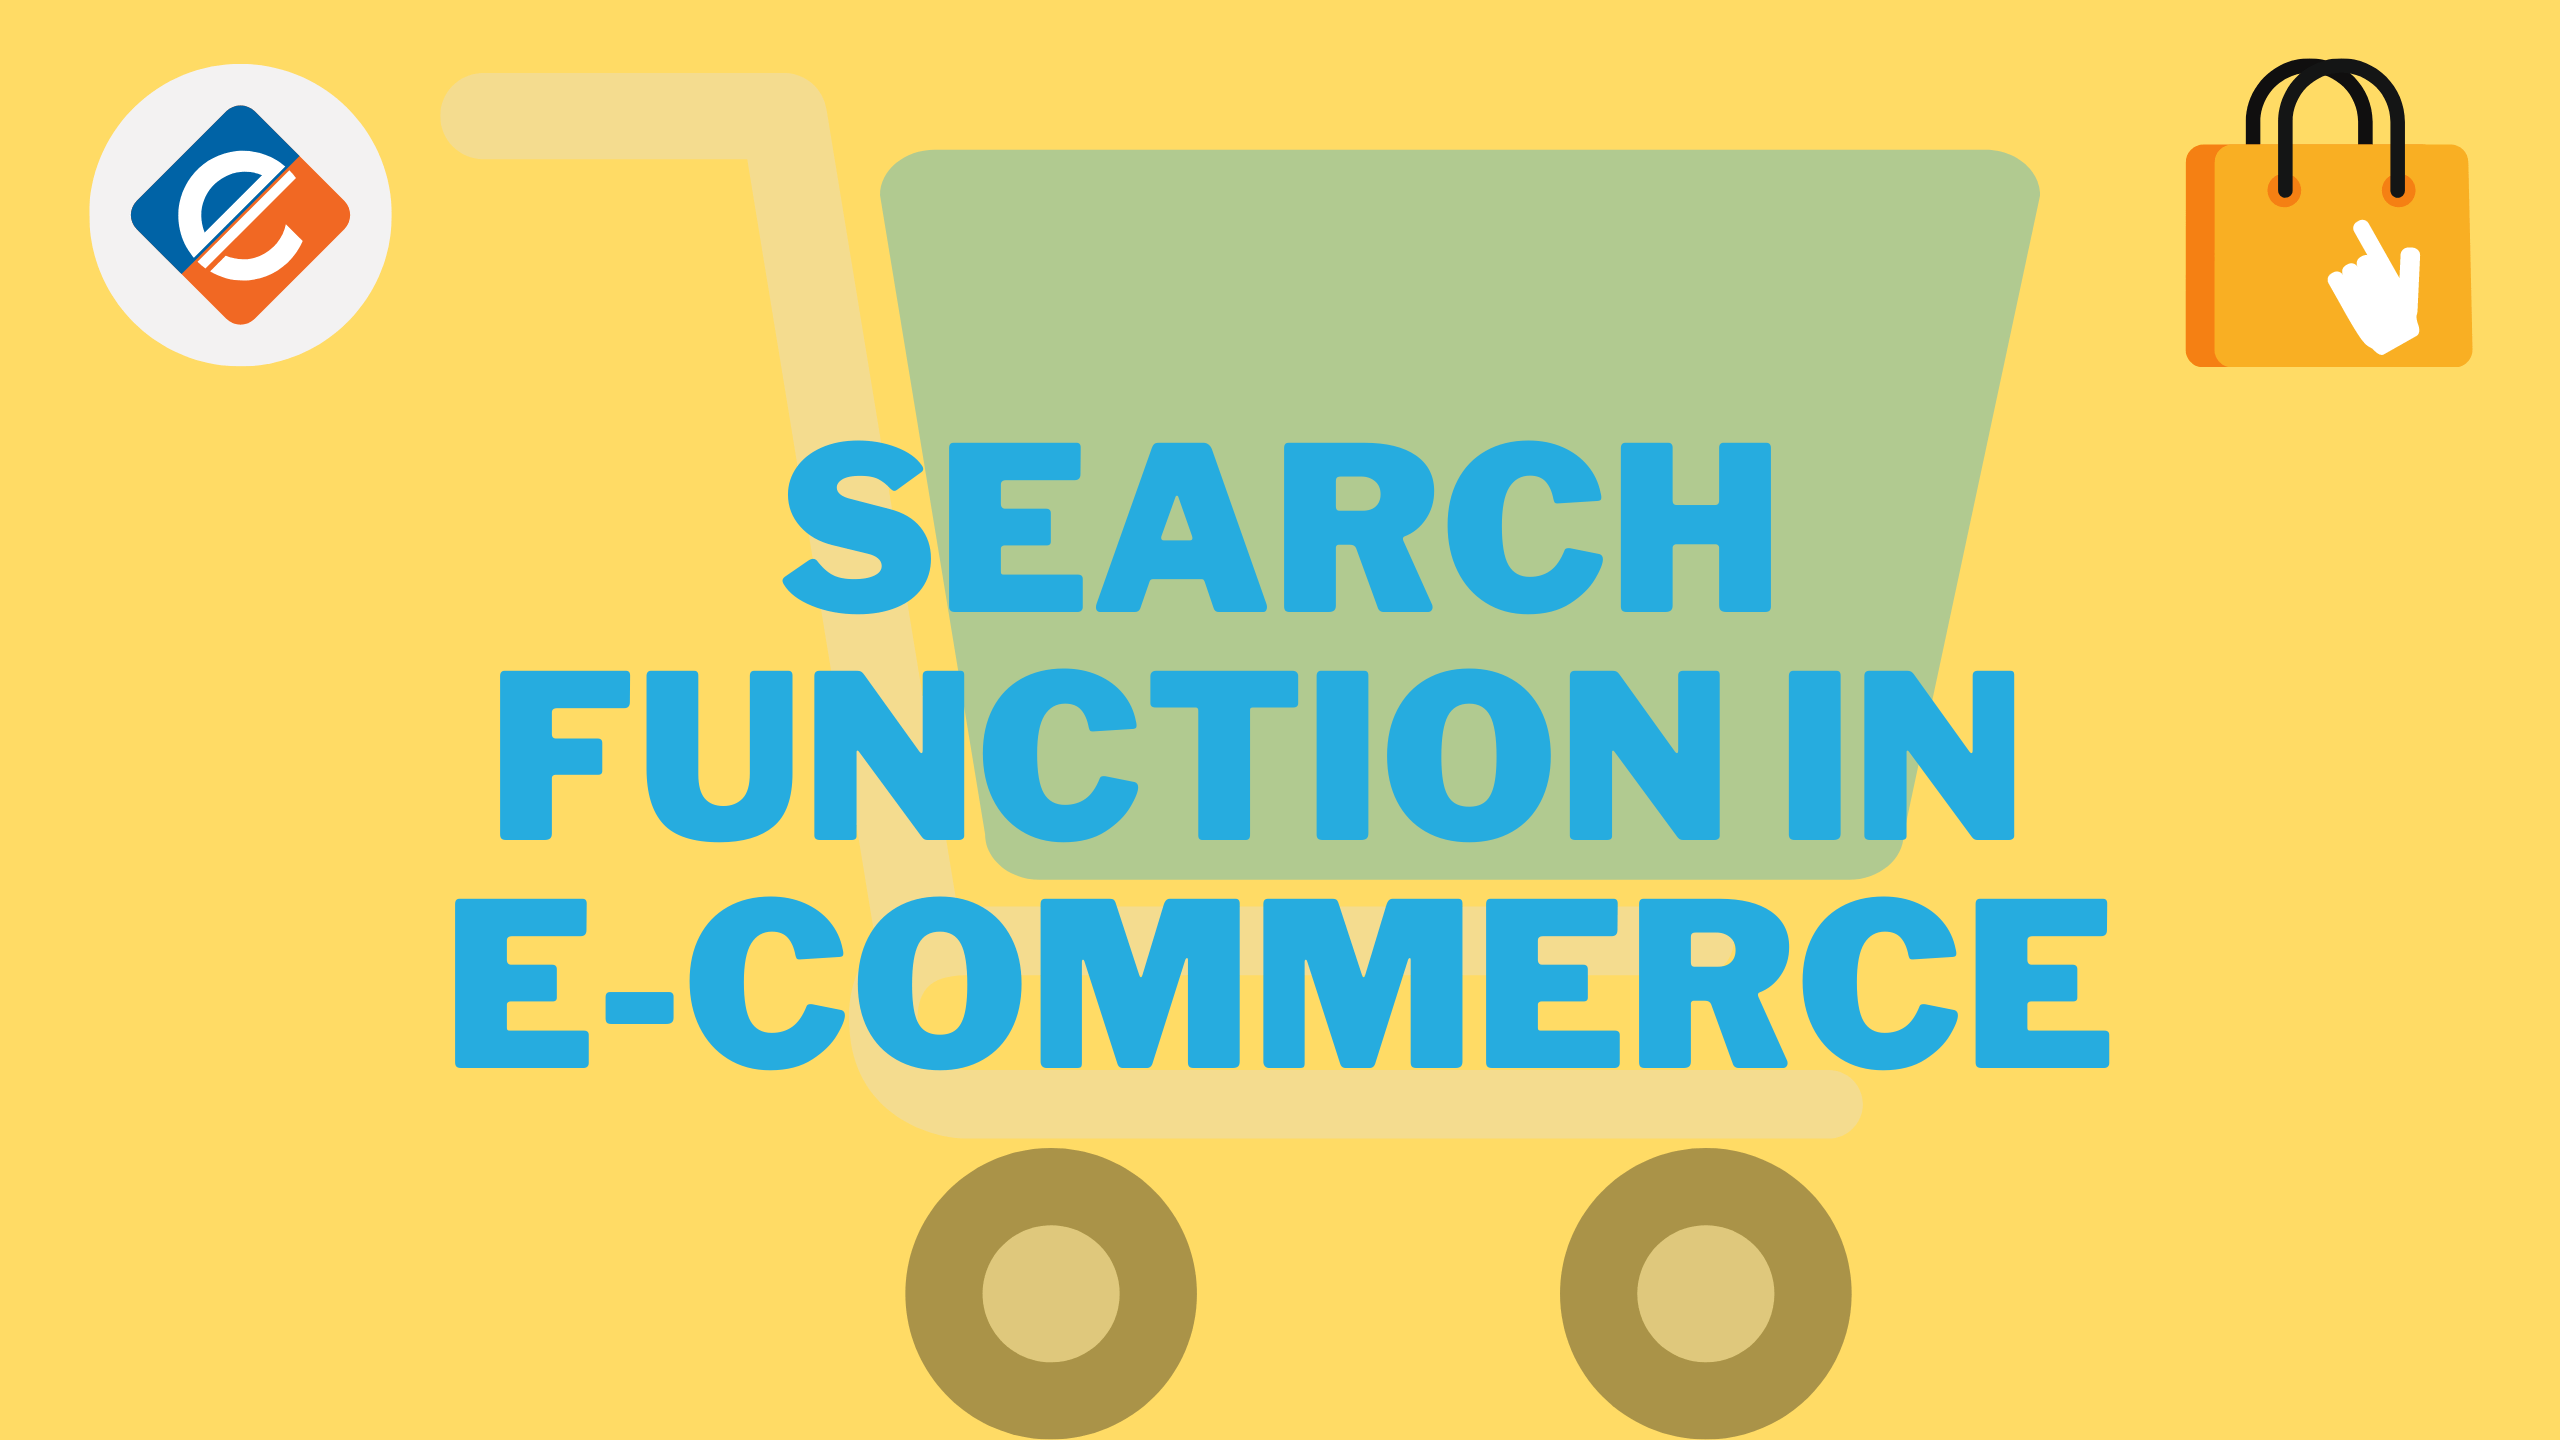 search function in ecommerce